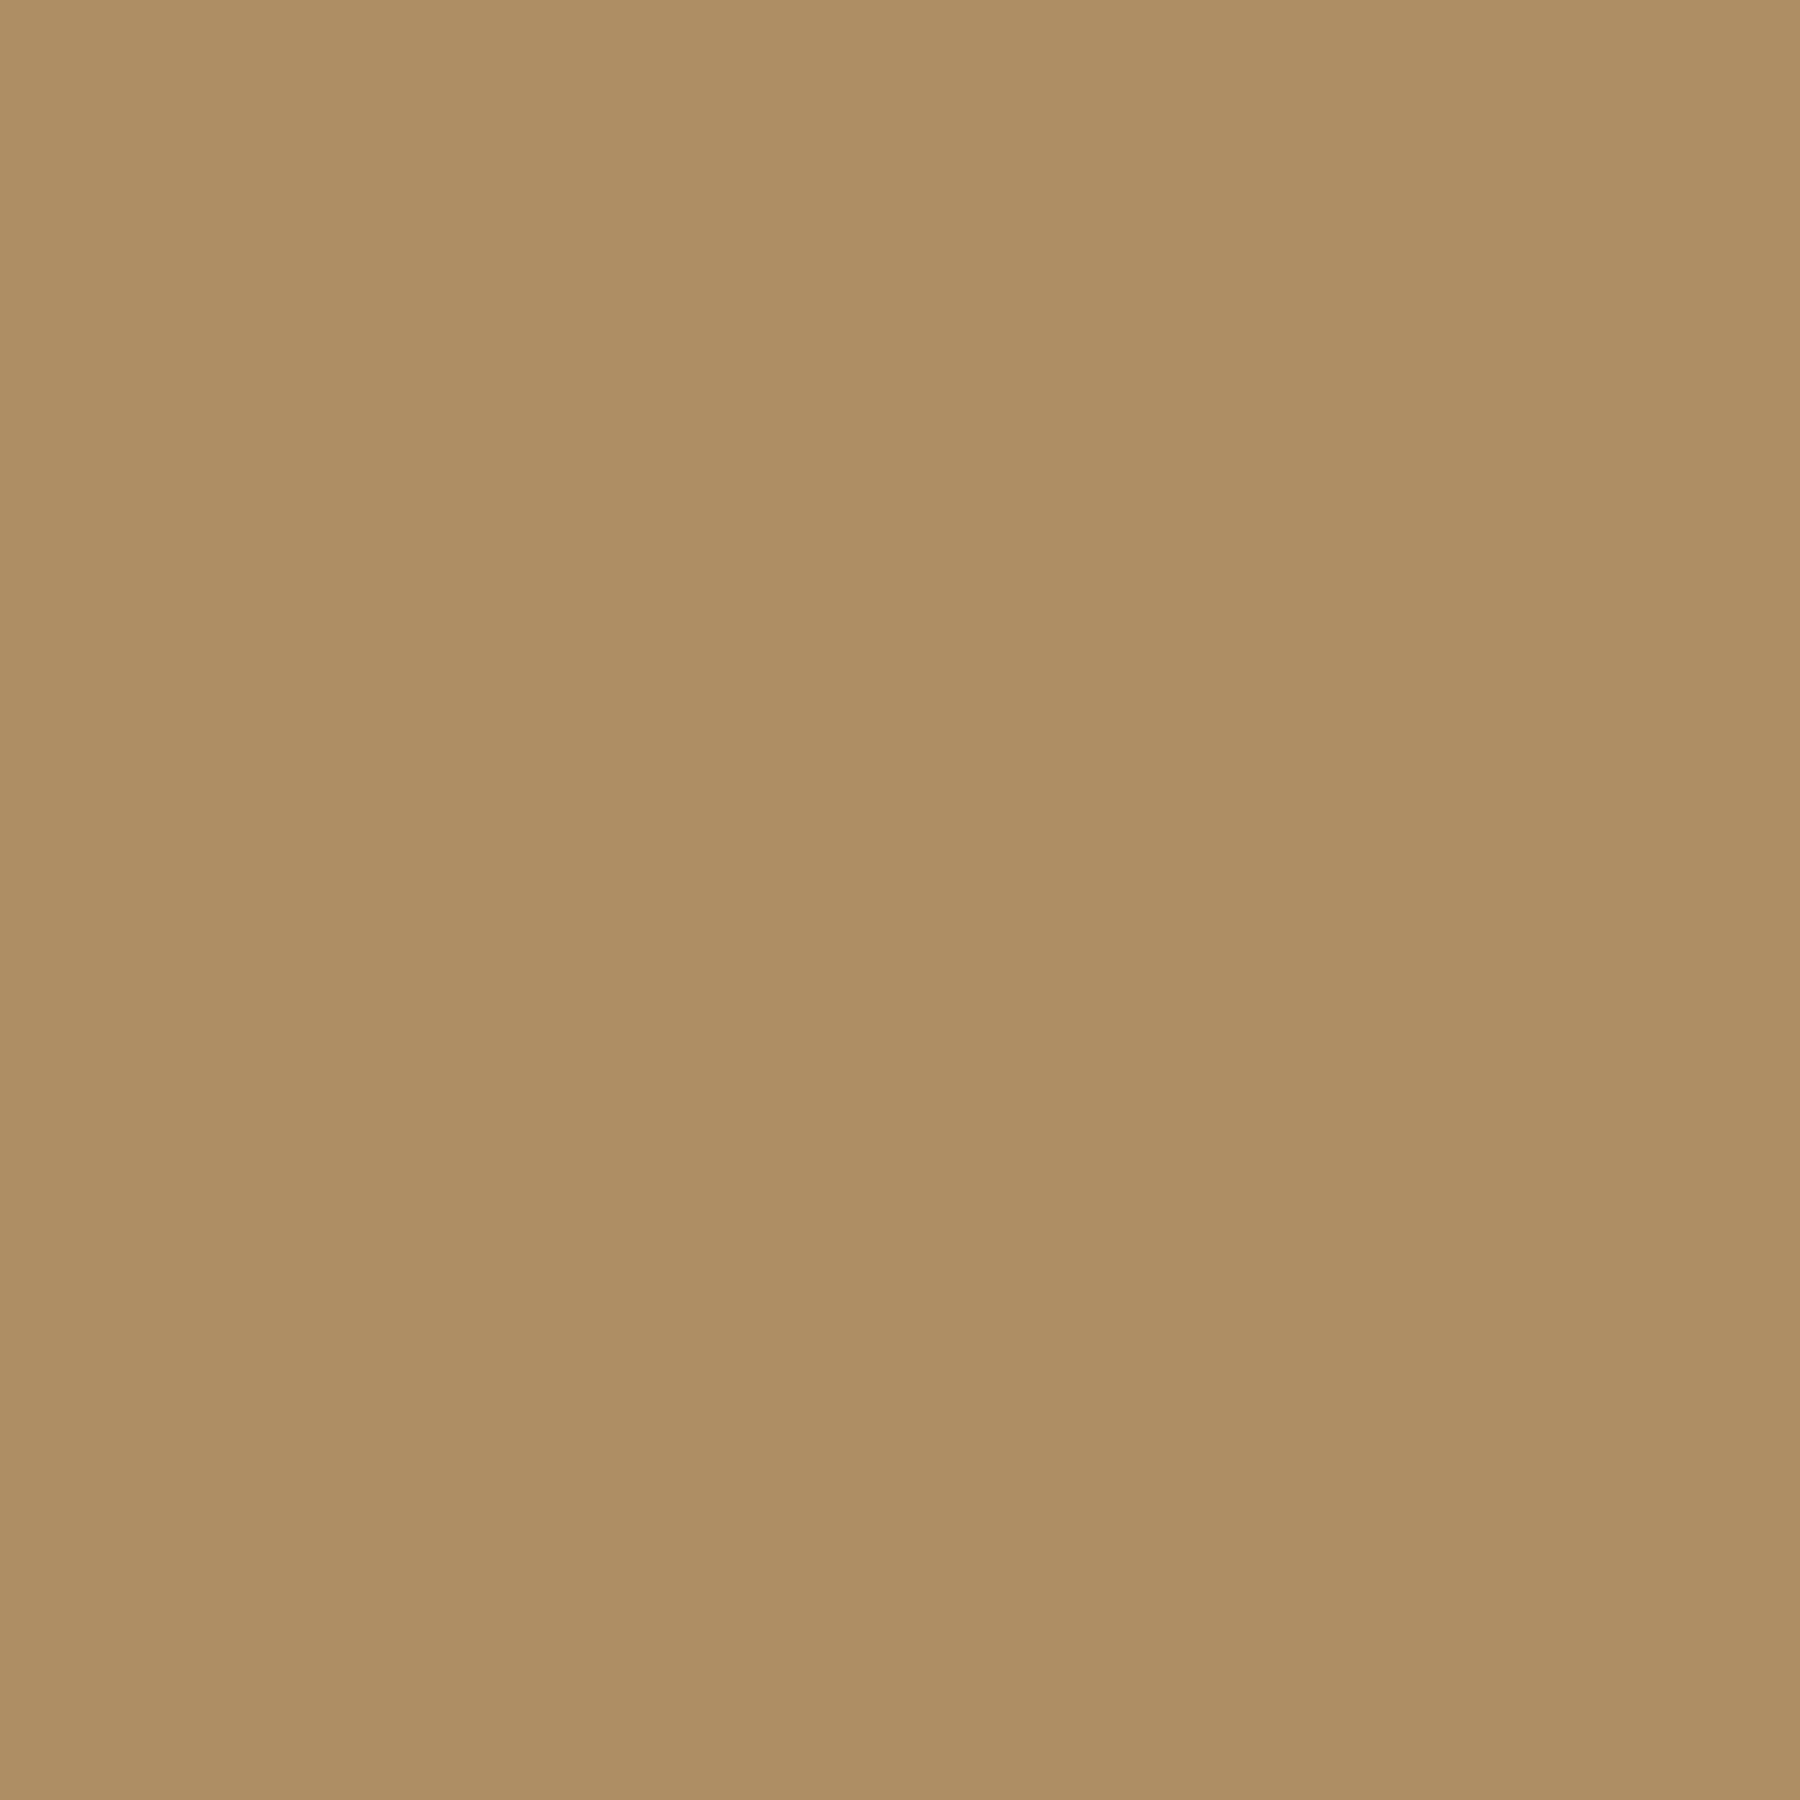 Light Brown - Oracal 631